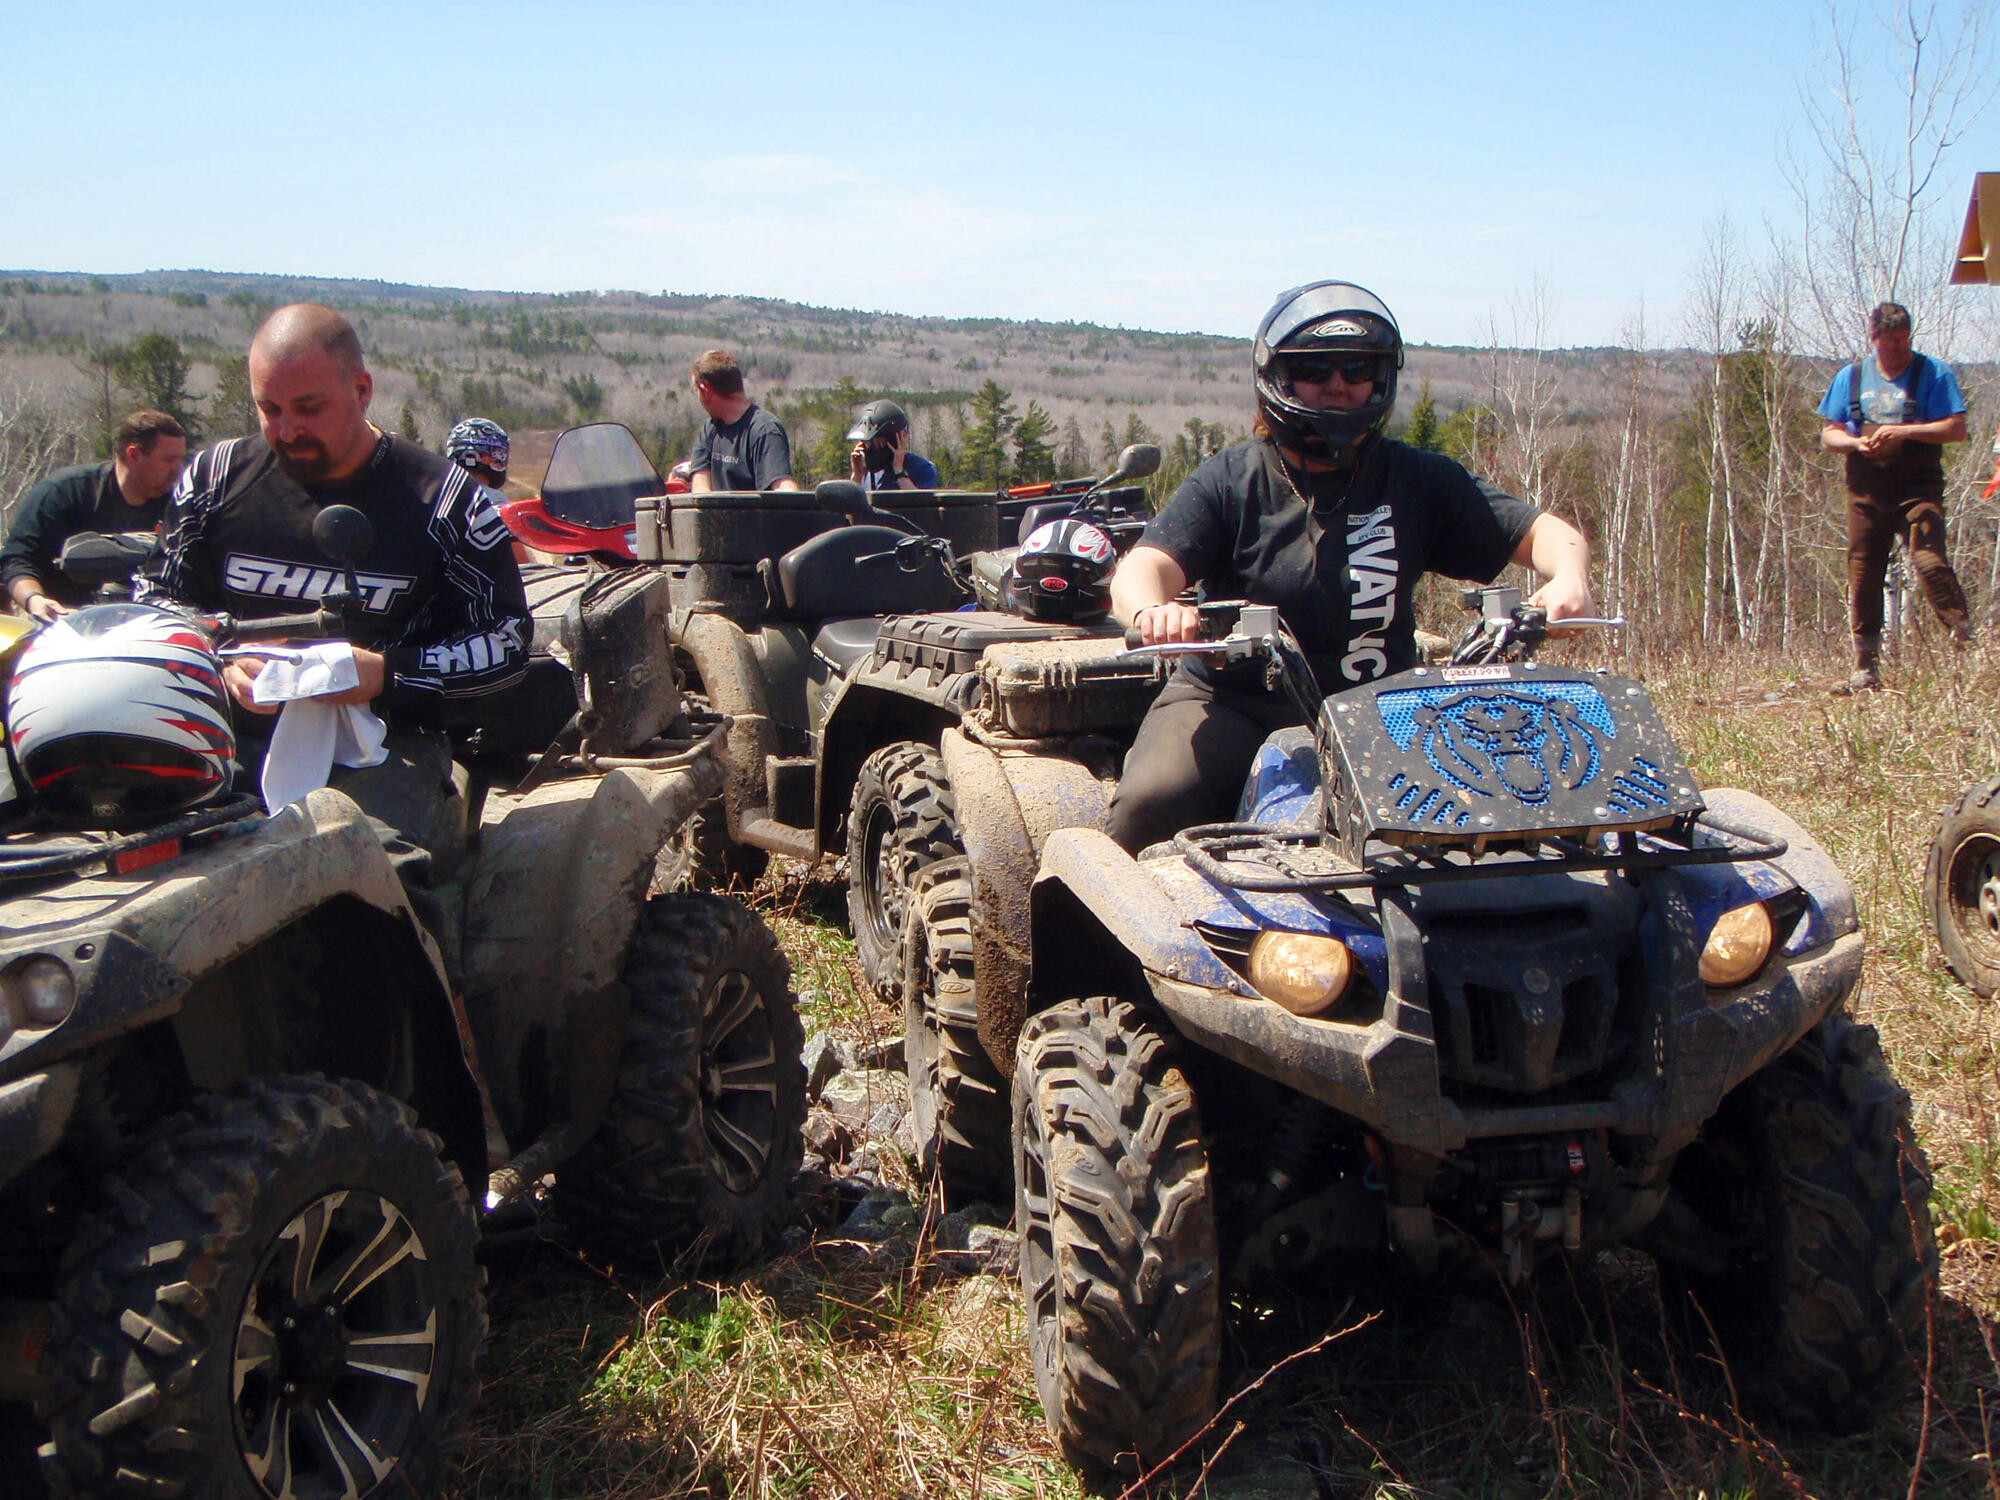 Atv Events 2020 Northern Mn.The Complete 2019 List Of Atv Events In Ontario Northern